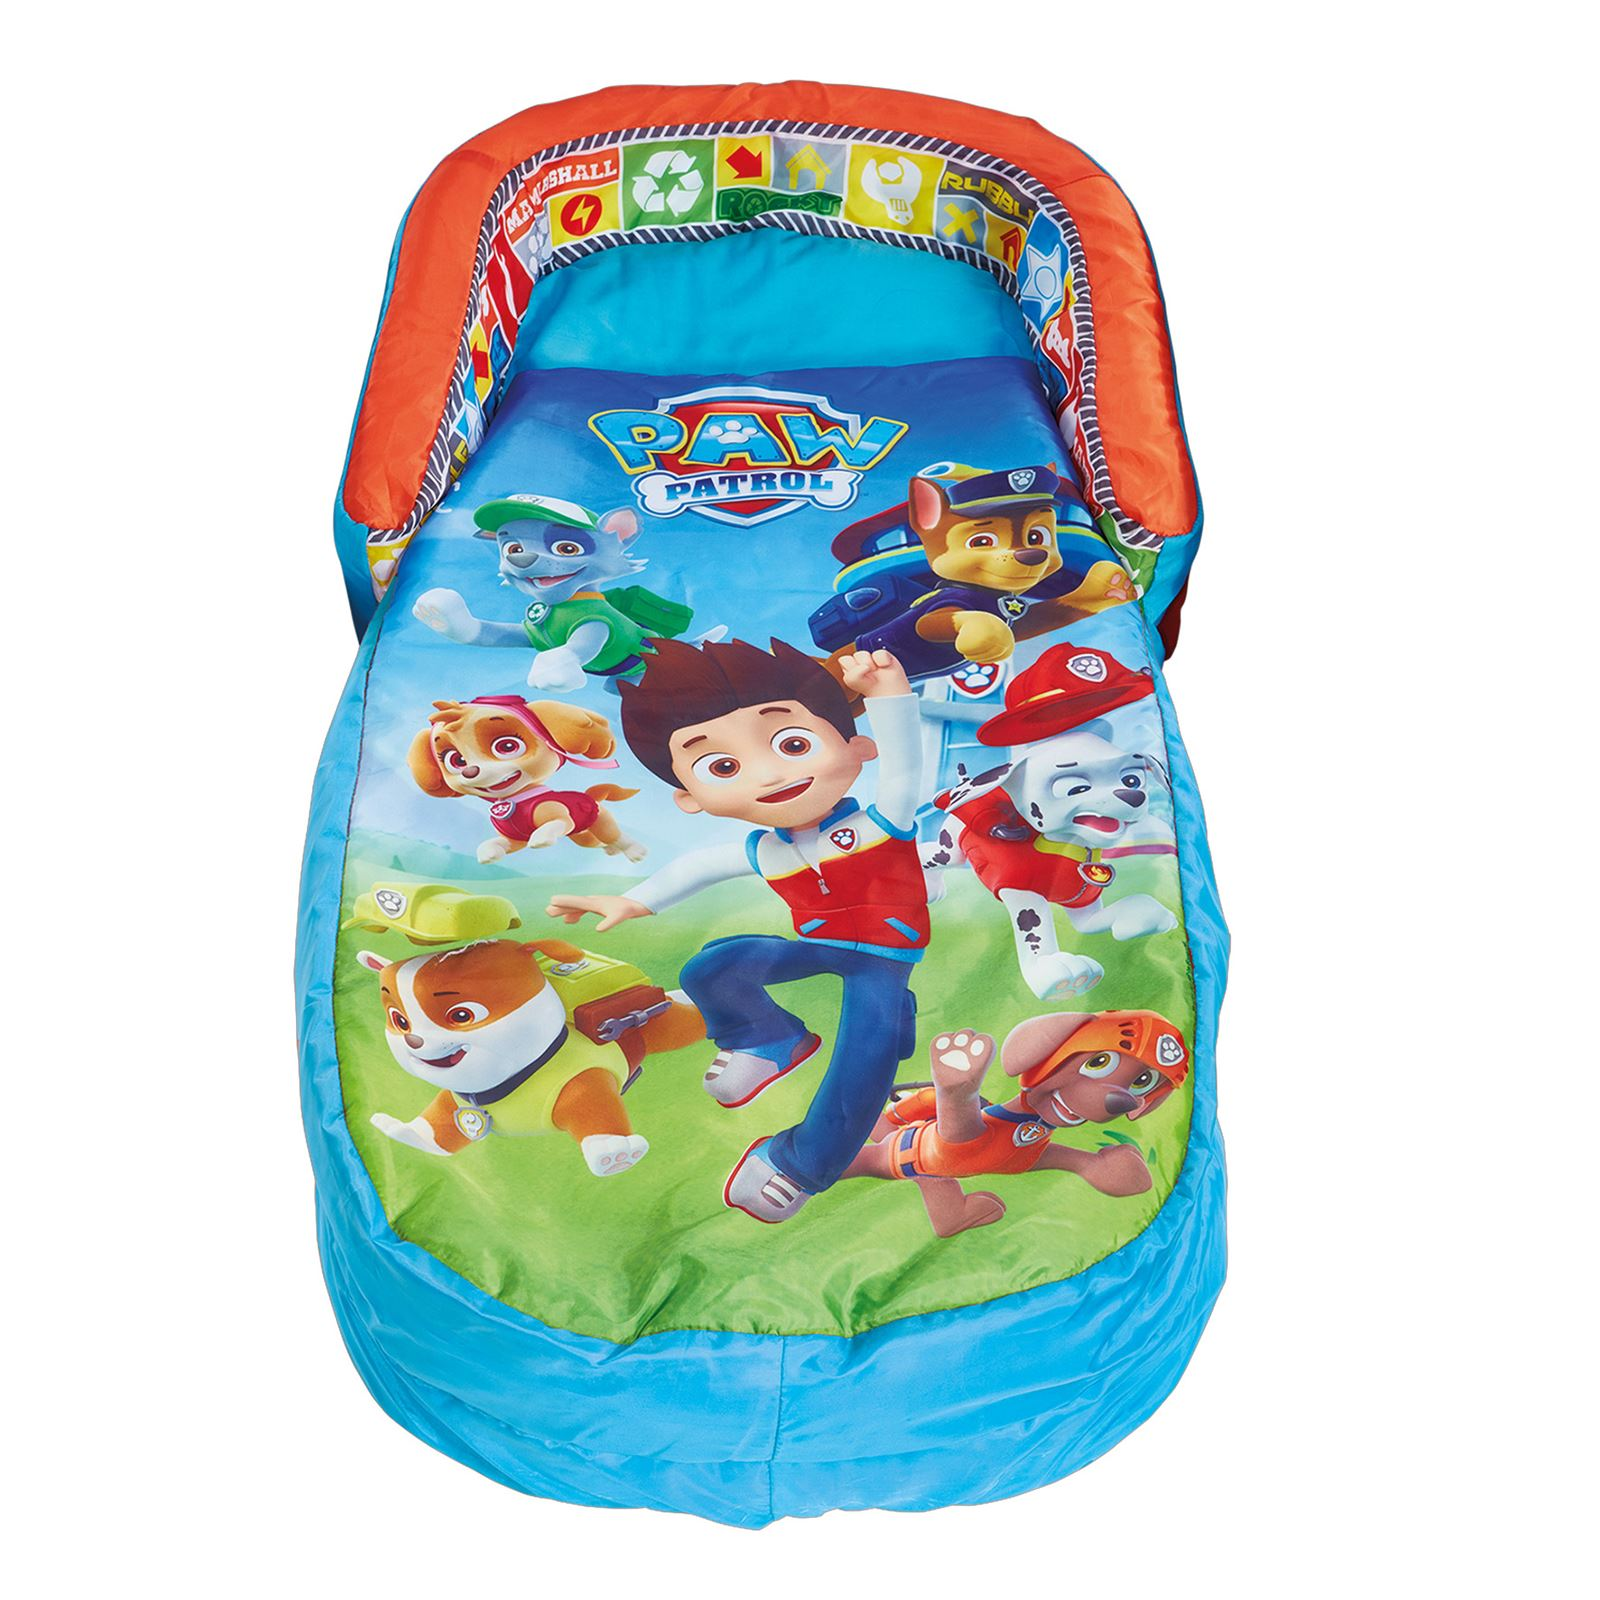 Paw Patrol Kids My First Ready Bed Inflatable Includes